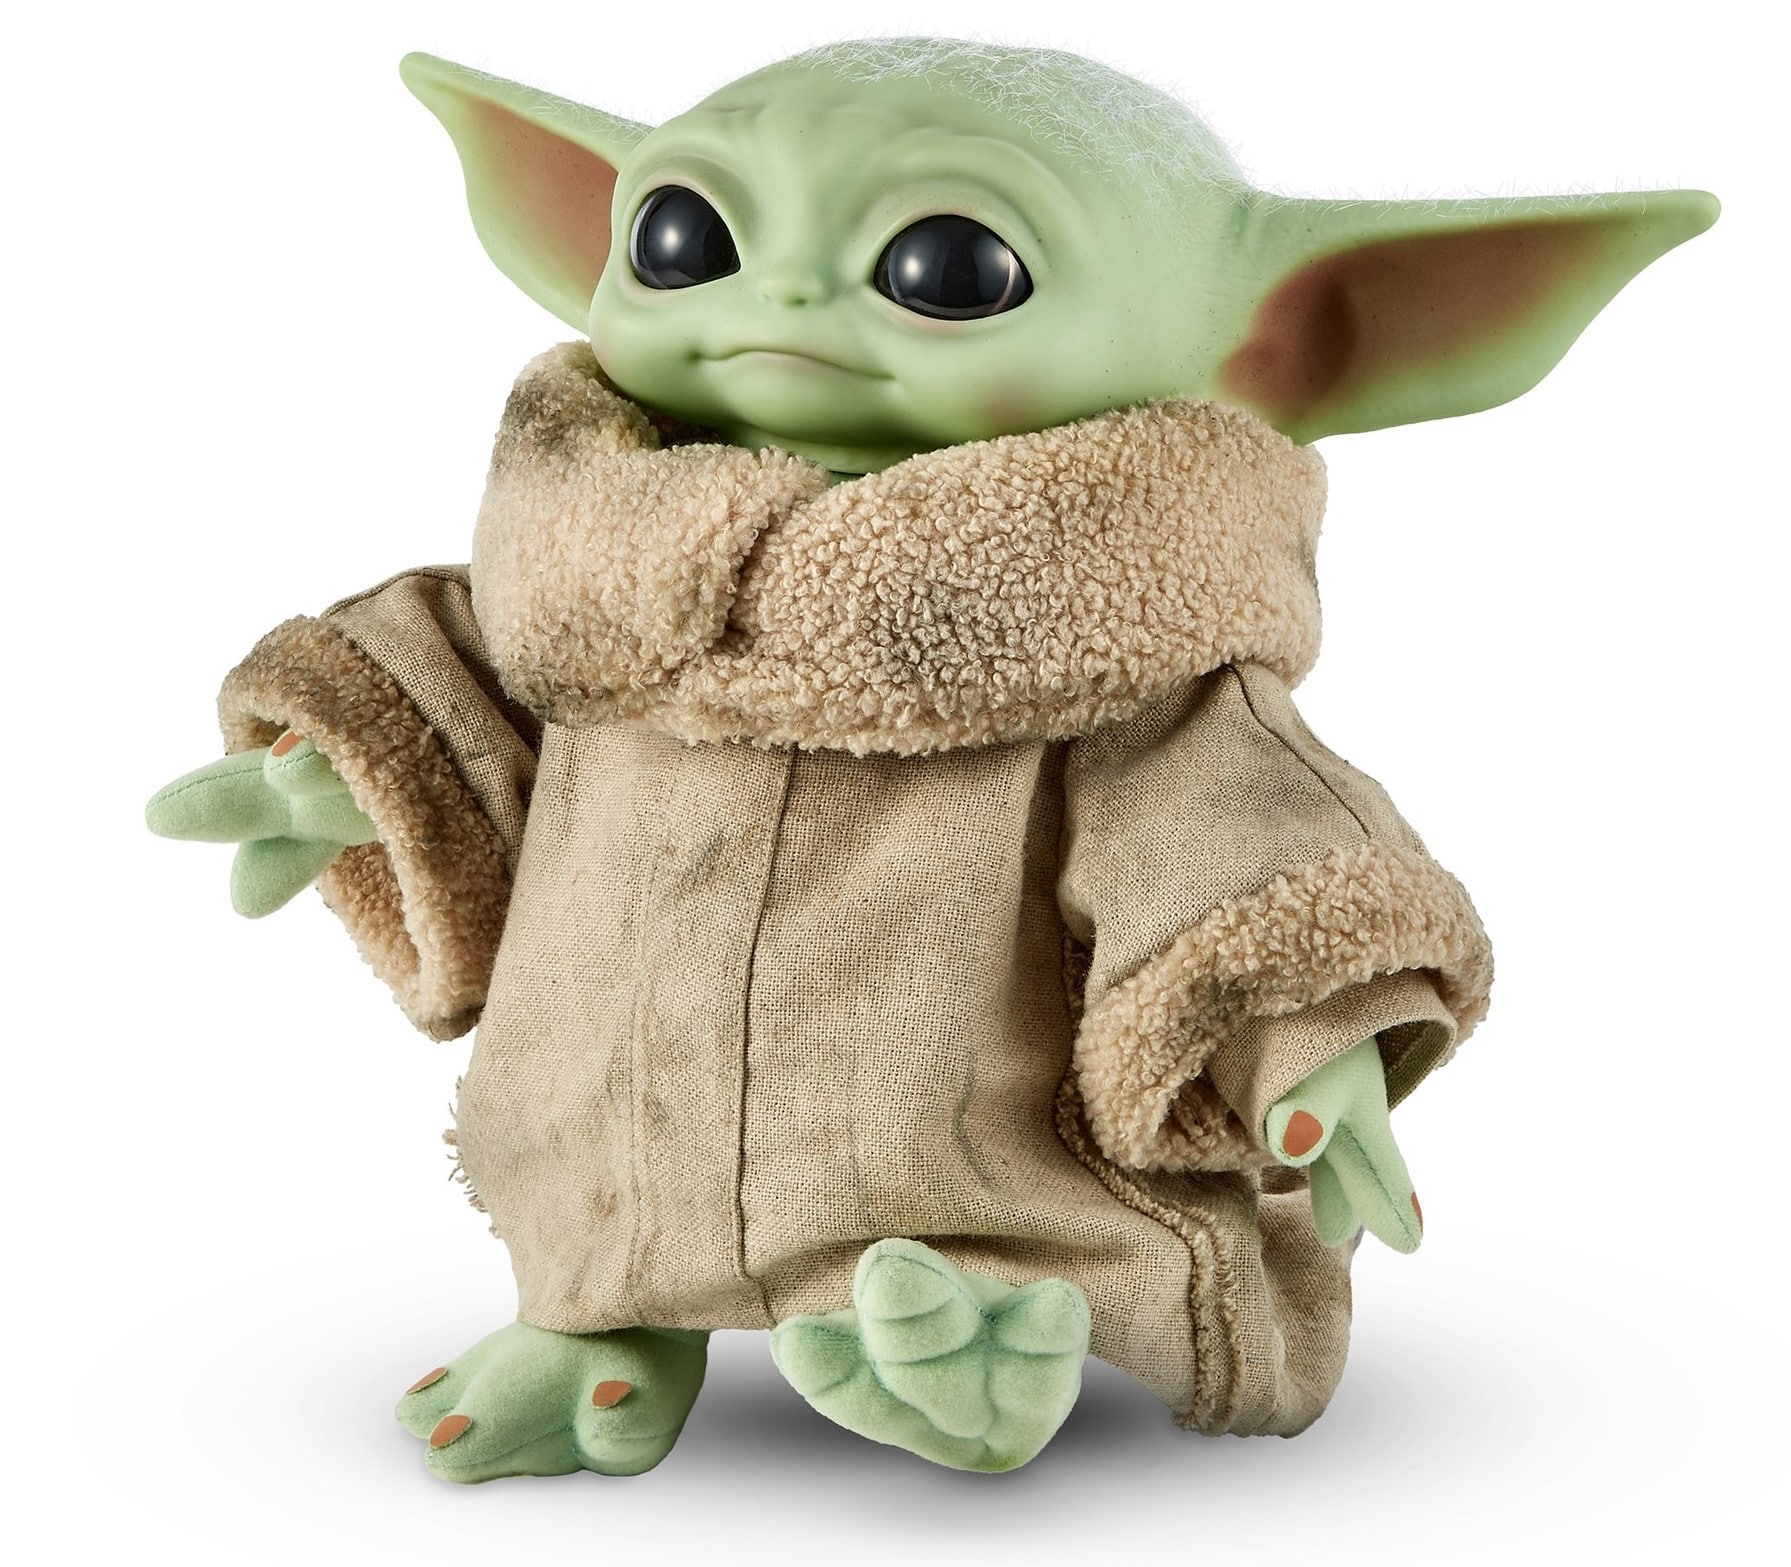 Baby Yoda gets a collector's edition plush with hover pram from Mattel 12